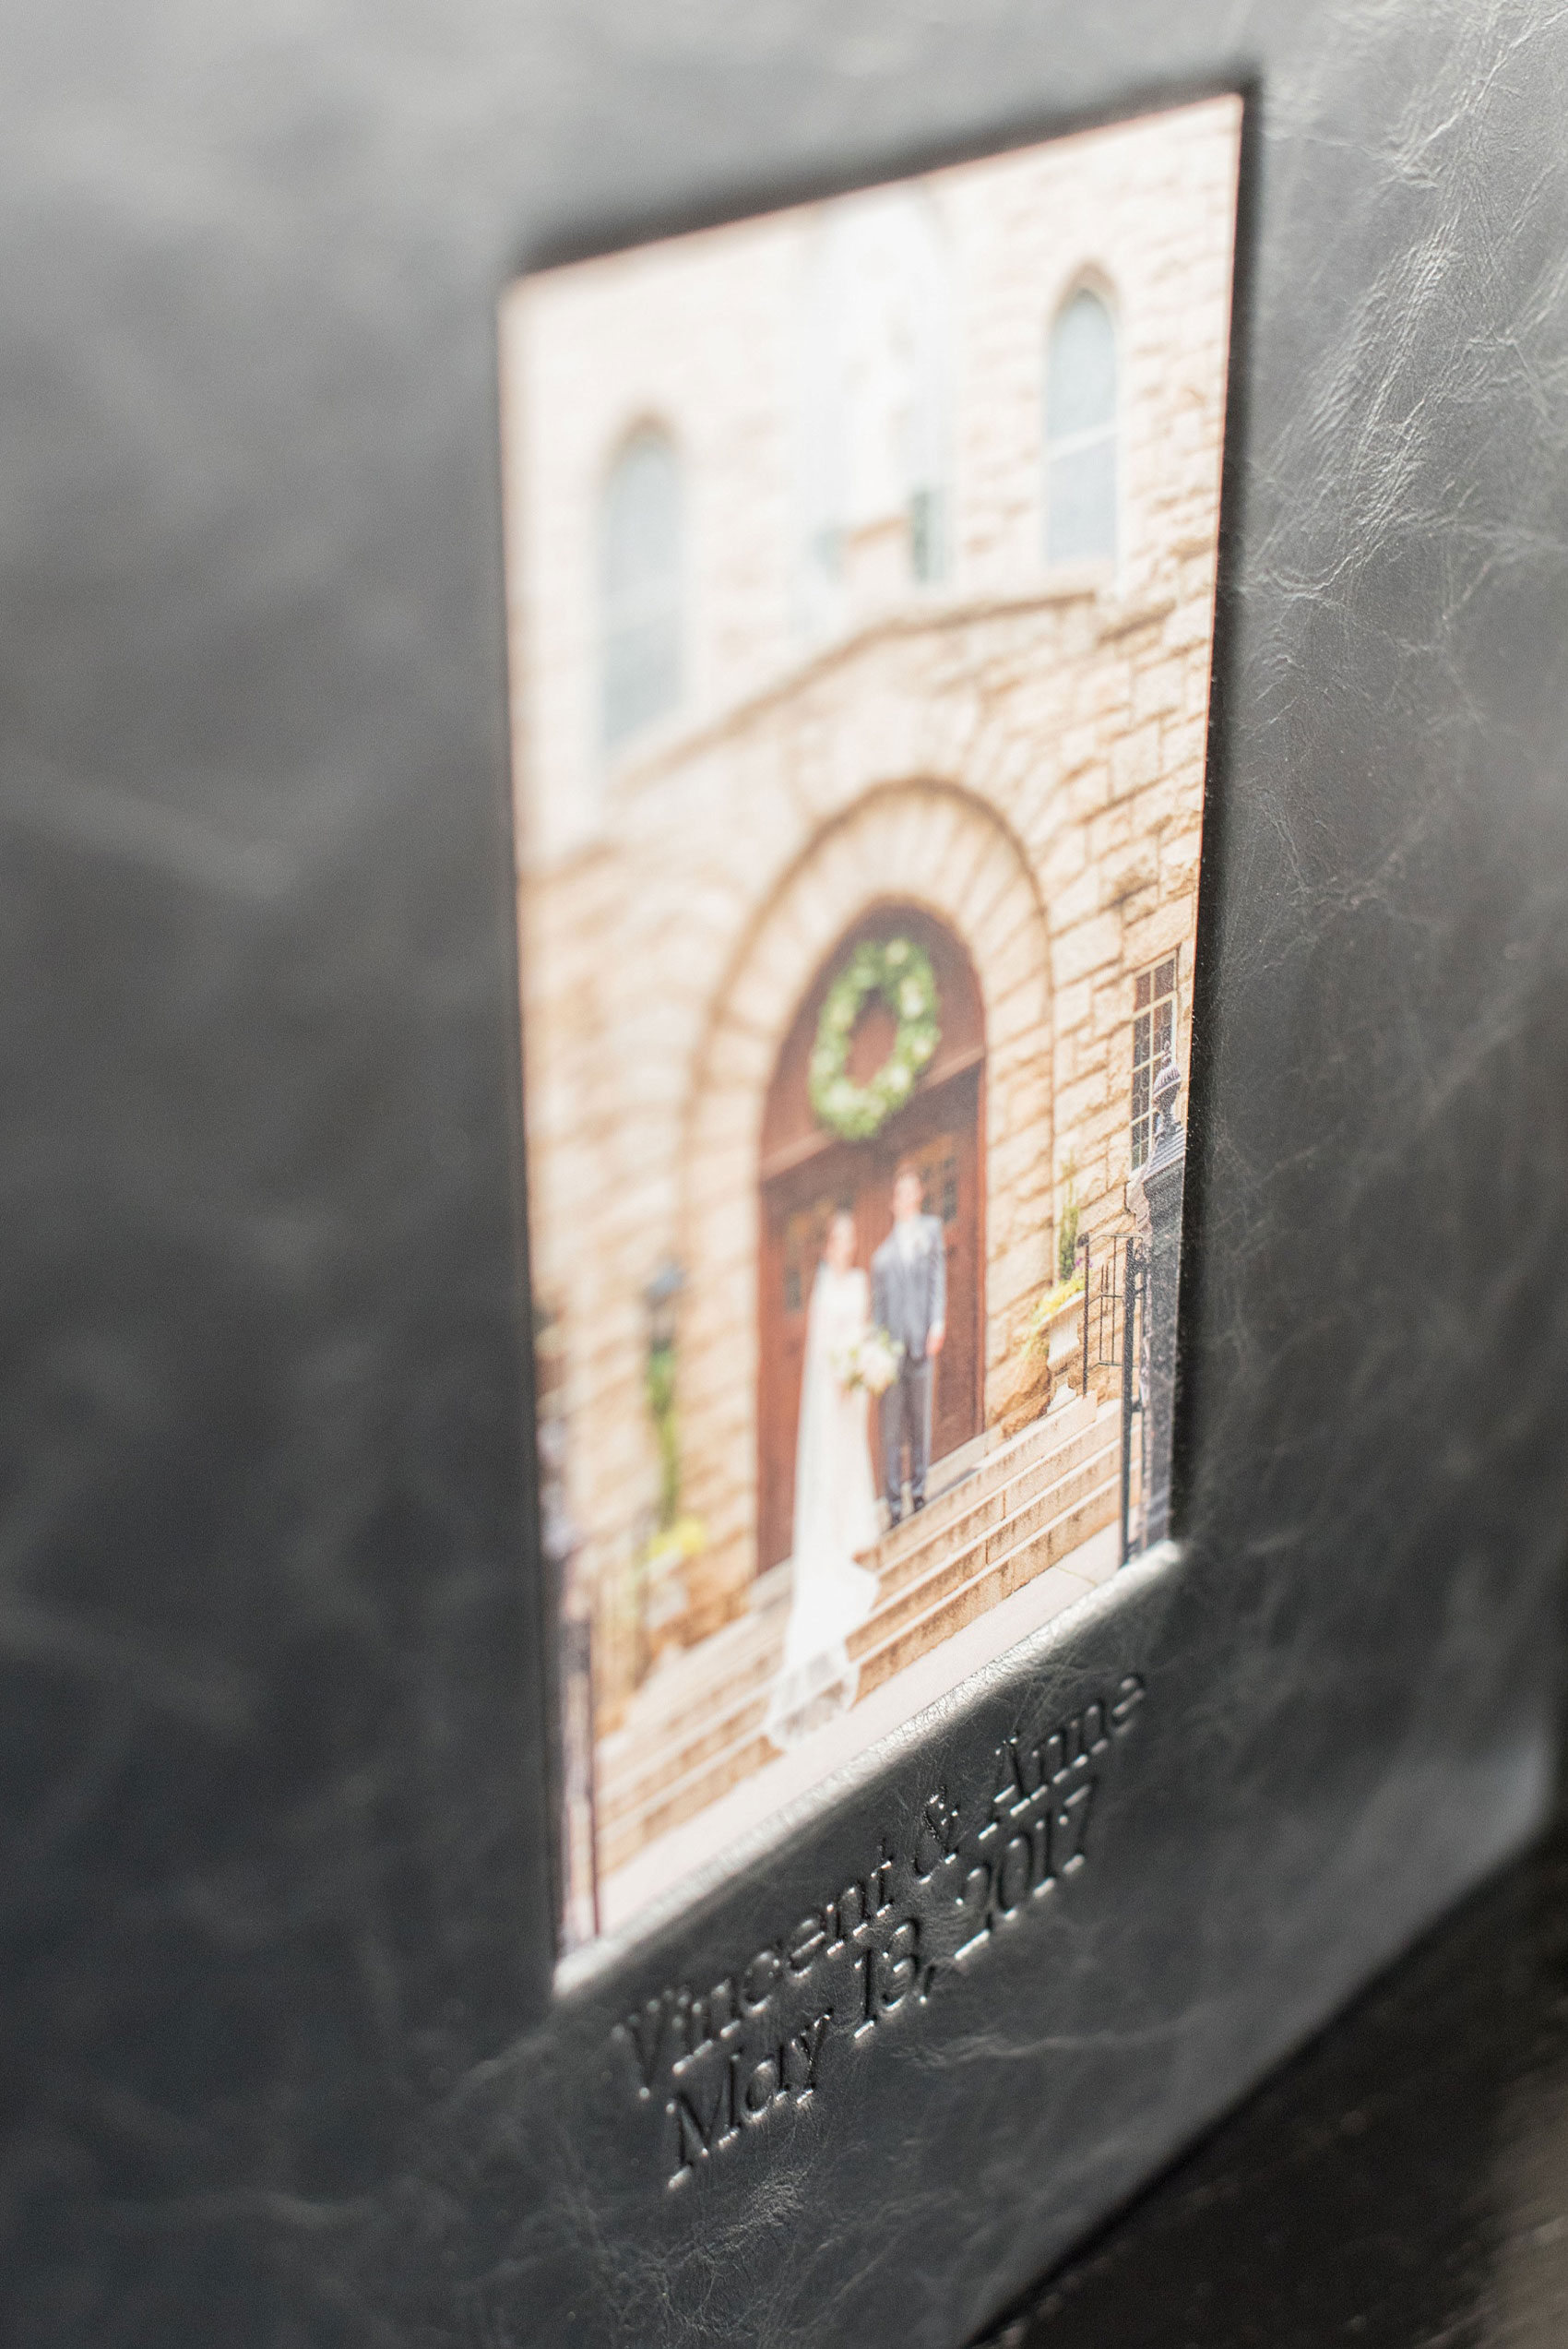 Images of a black calf leather fine art wedding album from Mikkel Paige Photography, a Raleigh, NC photographer. Photo shows inset cover image and debossing text.